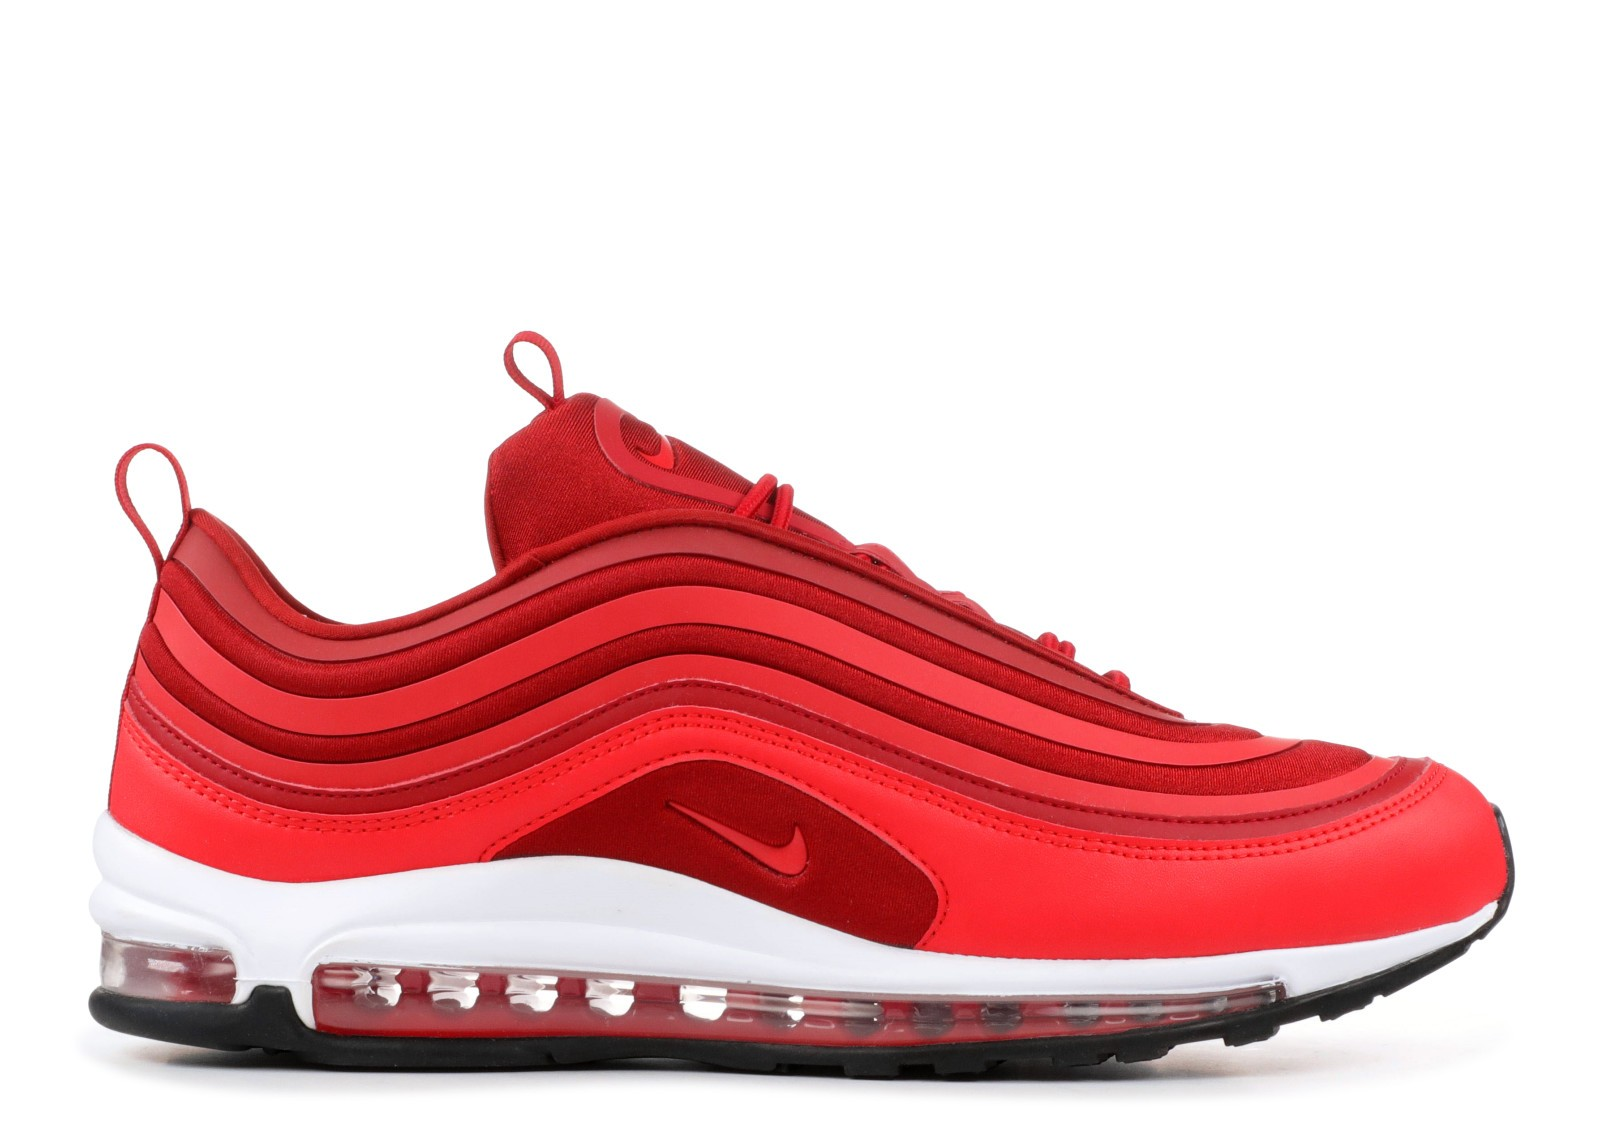 Nike Donne Air Max 97 Ul' 17 Rosse/Rosse/Nere 917704-601